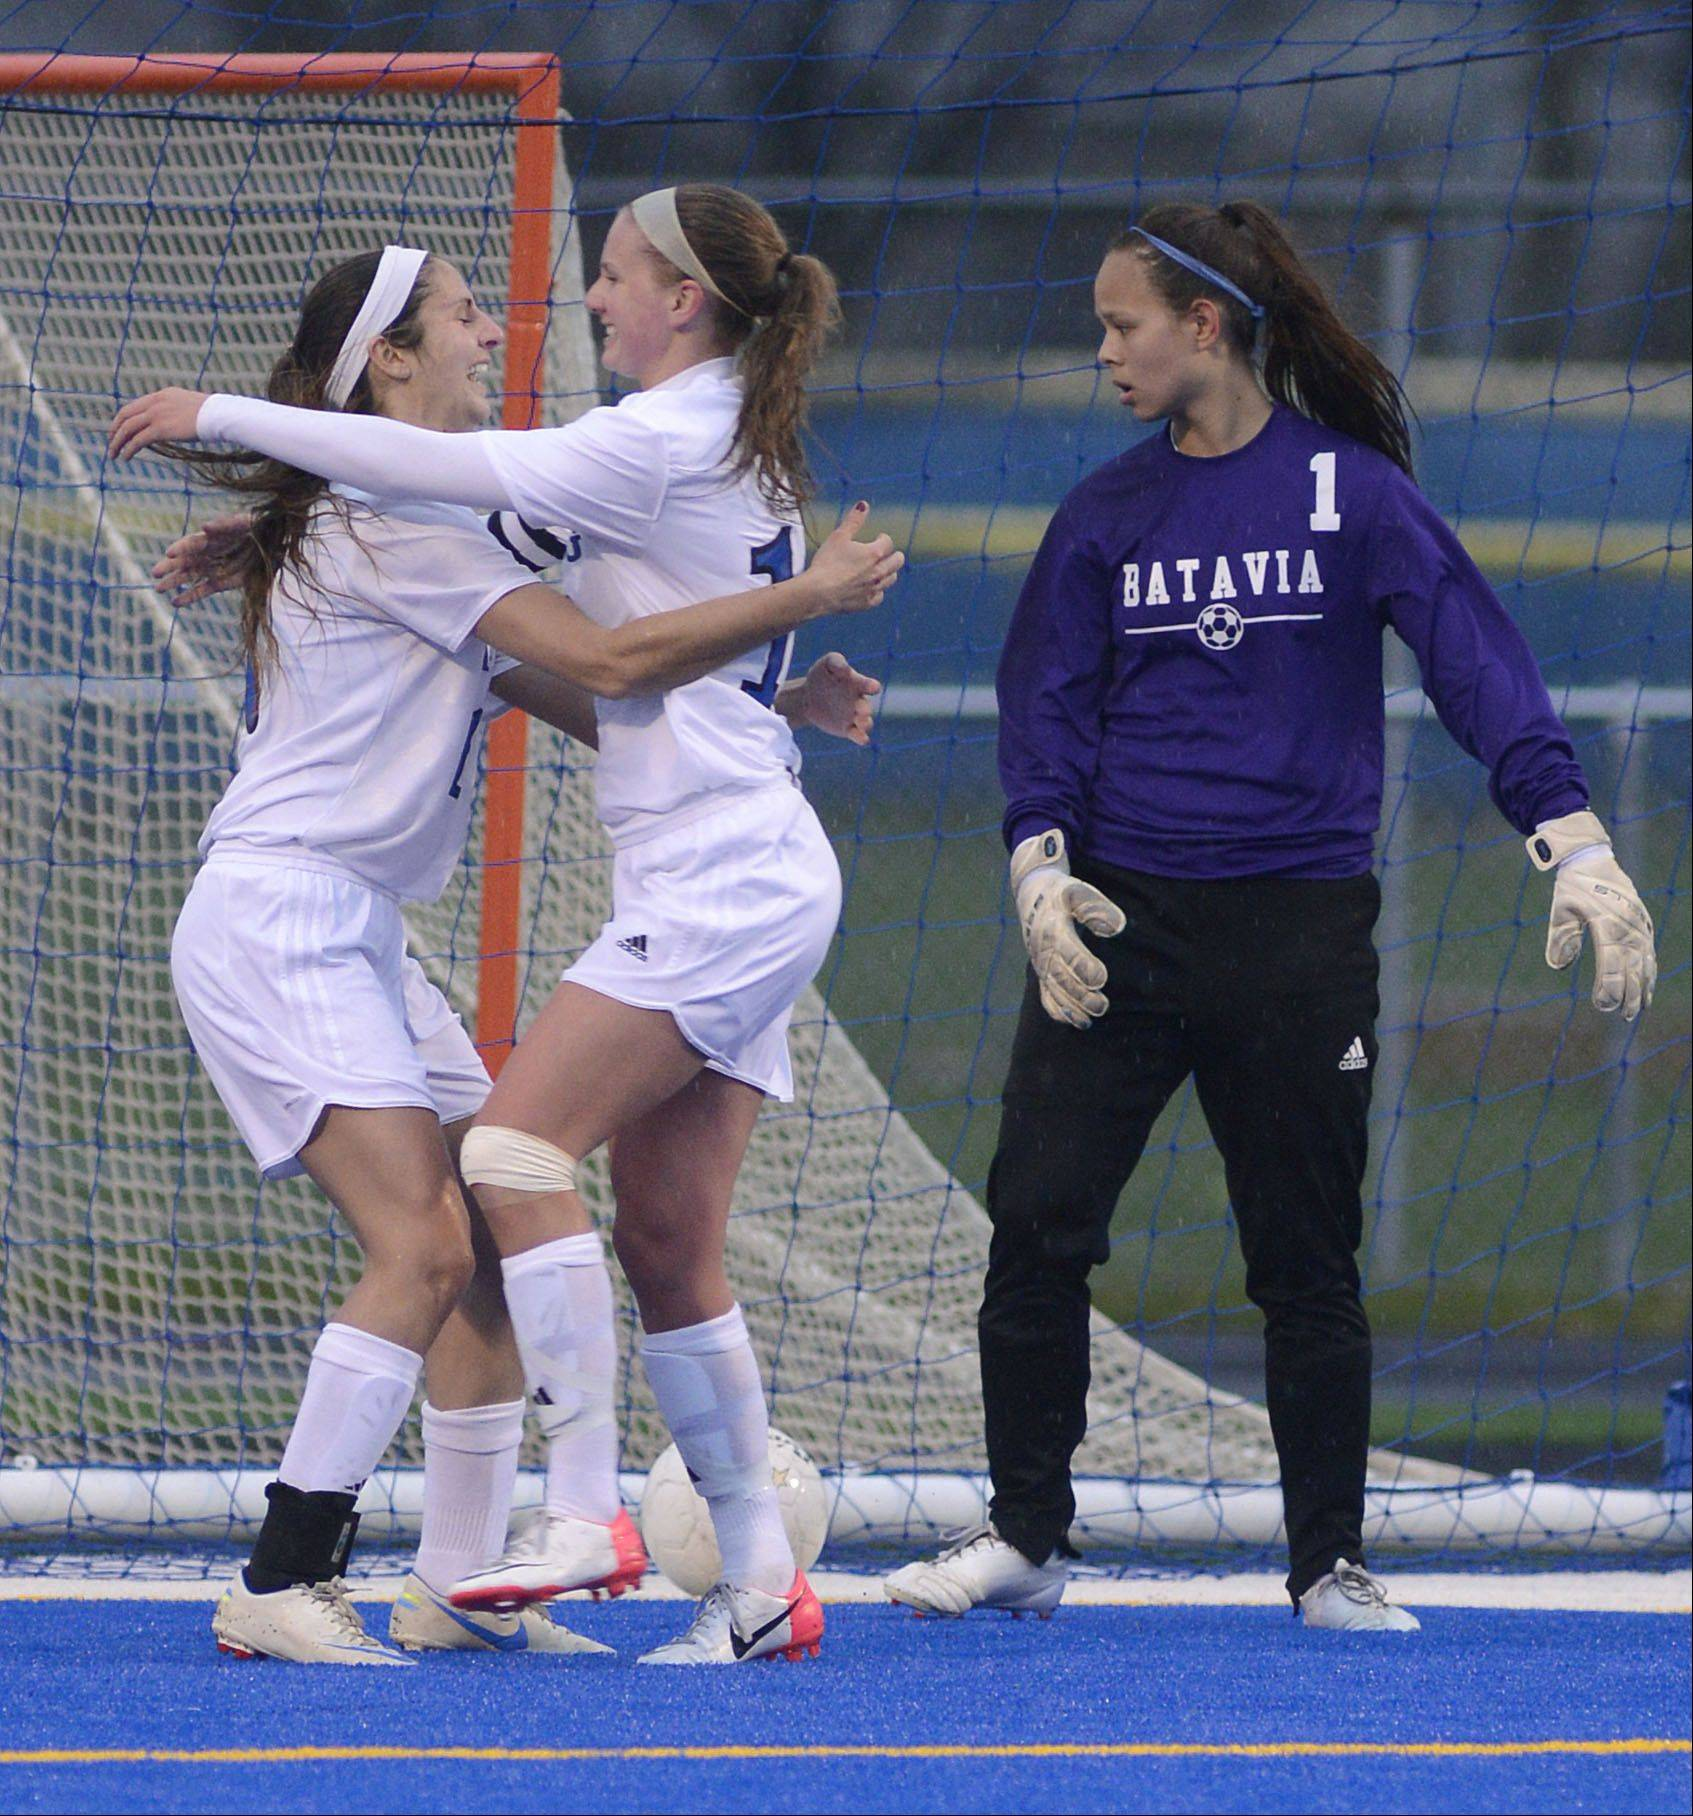 Genevaa; s Molly Axen, left, celebrates her goal with teammate Amanda Lulek as Batavia goalie Nicki Seiton looks back at the missed ball in the first half on Tuesday, April 23.